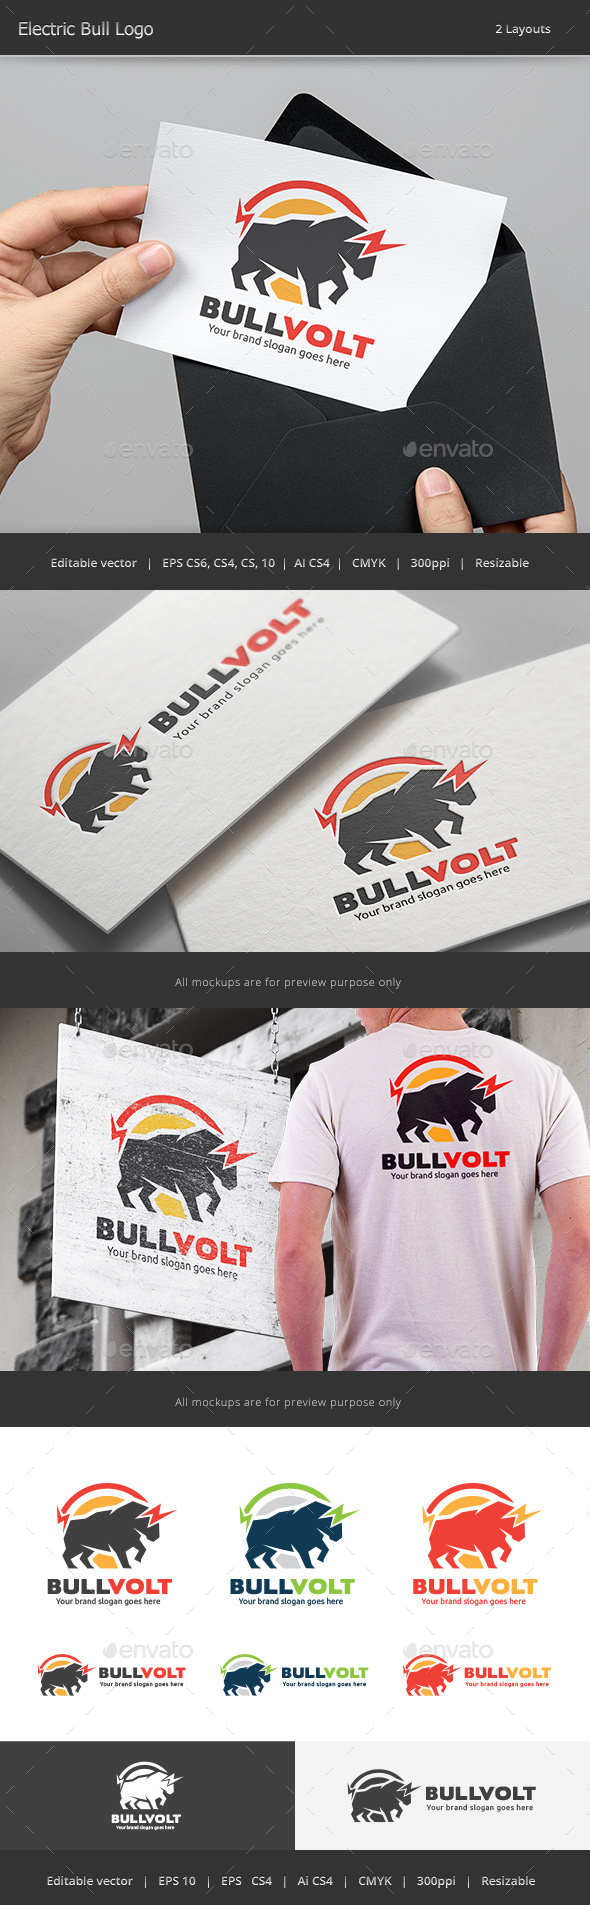 Electric Bull Logo - Animals Logo Templates